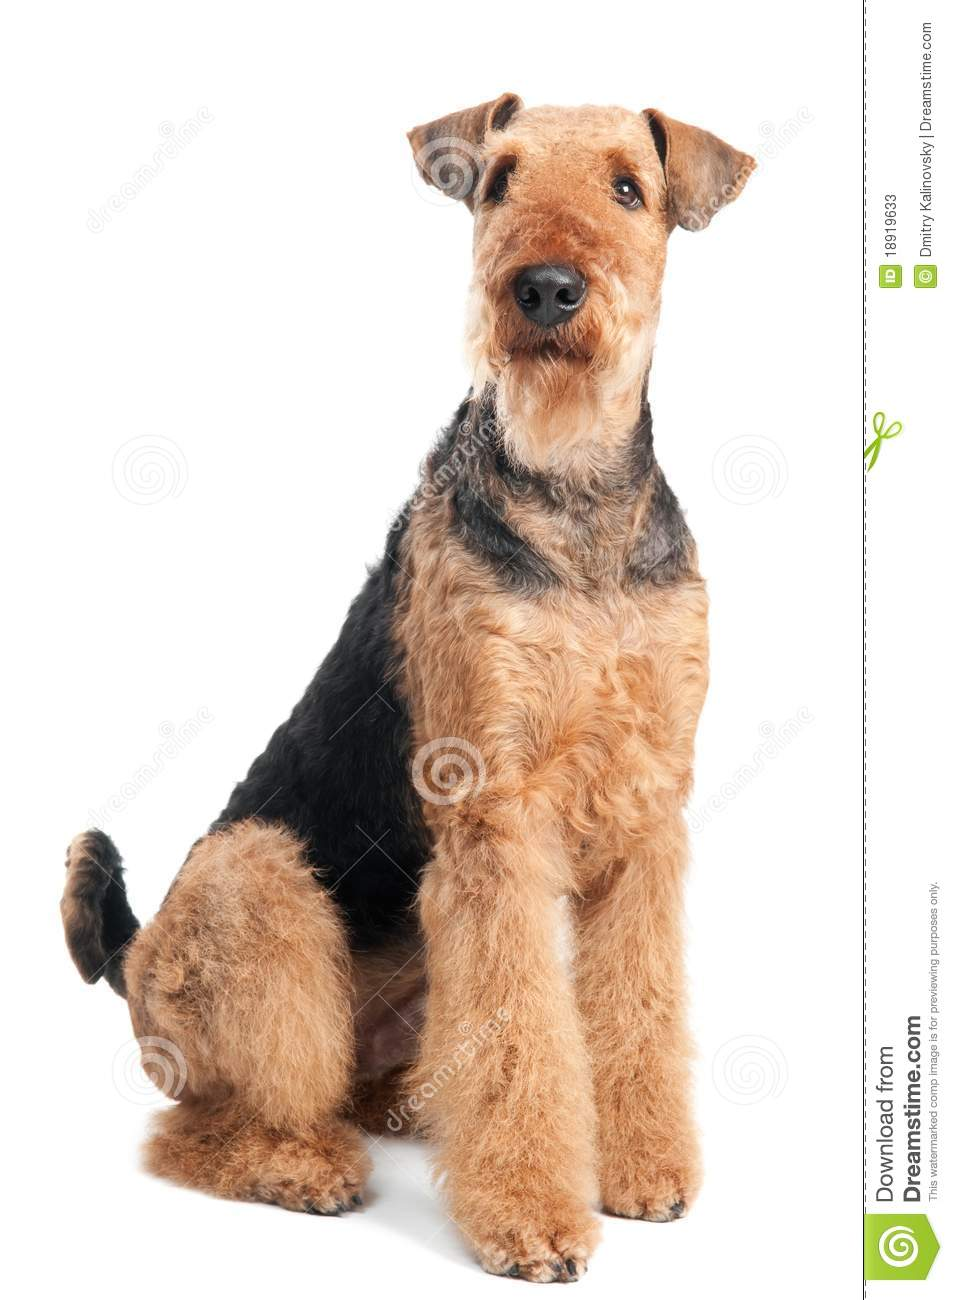 Cão do terrier do Airedale isolado